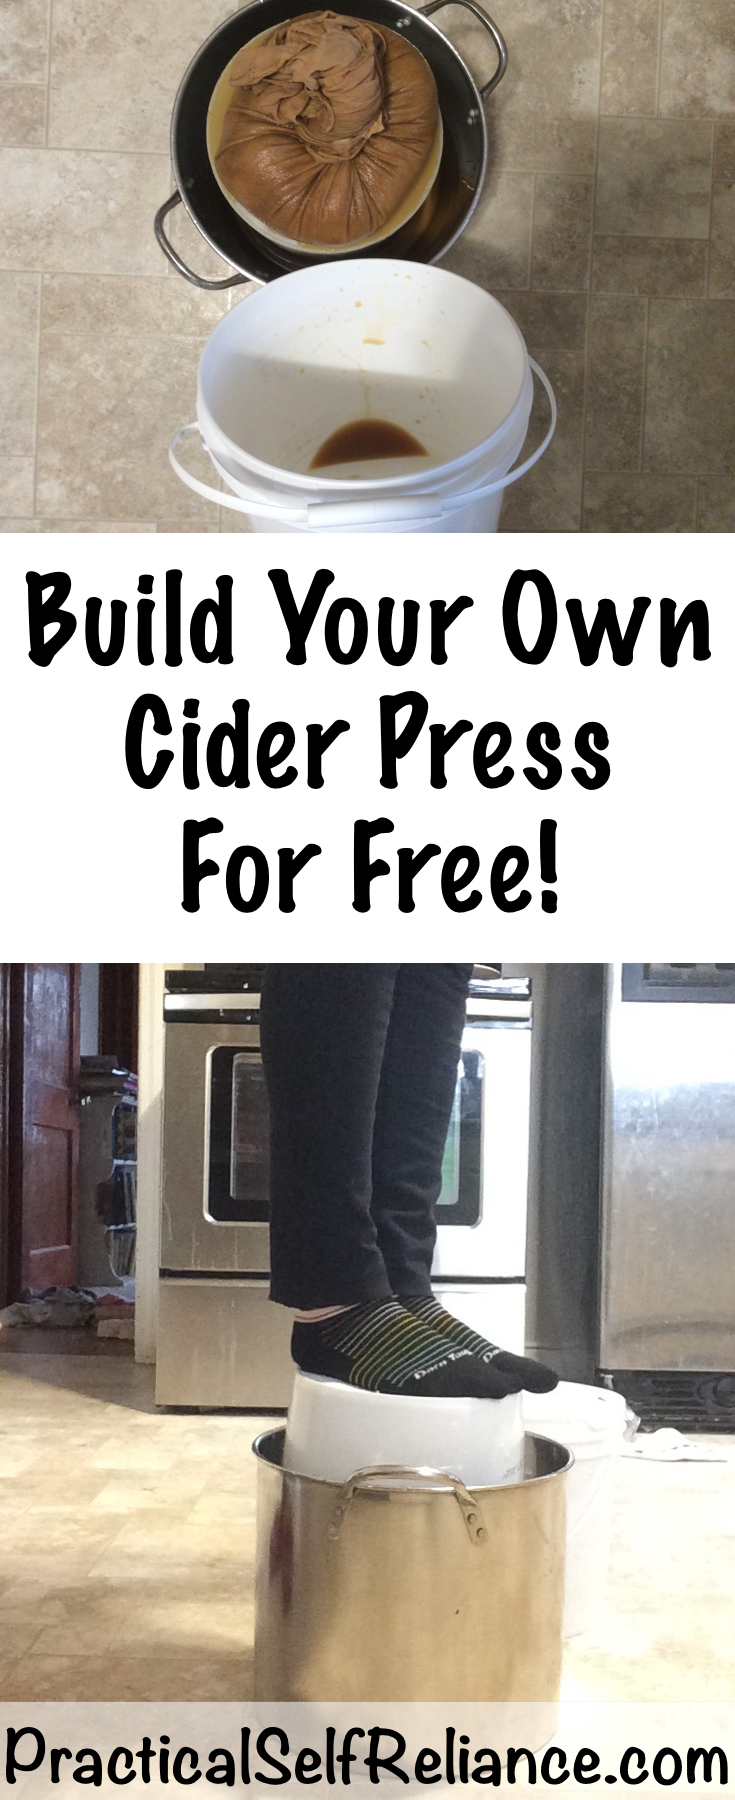 Build Your Own DIY Cider Press for Free #apples #applecider #appleciderpress #homestead #homesteading #selfsufficiency #selfreliant #preparedness